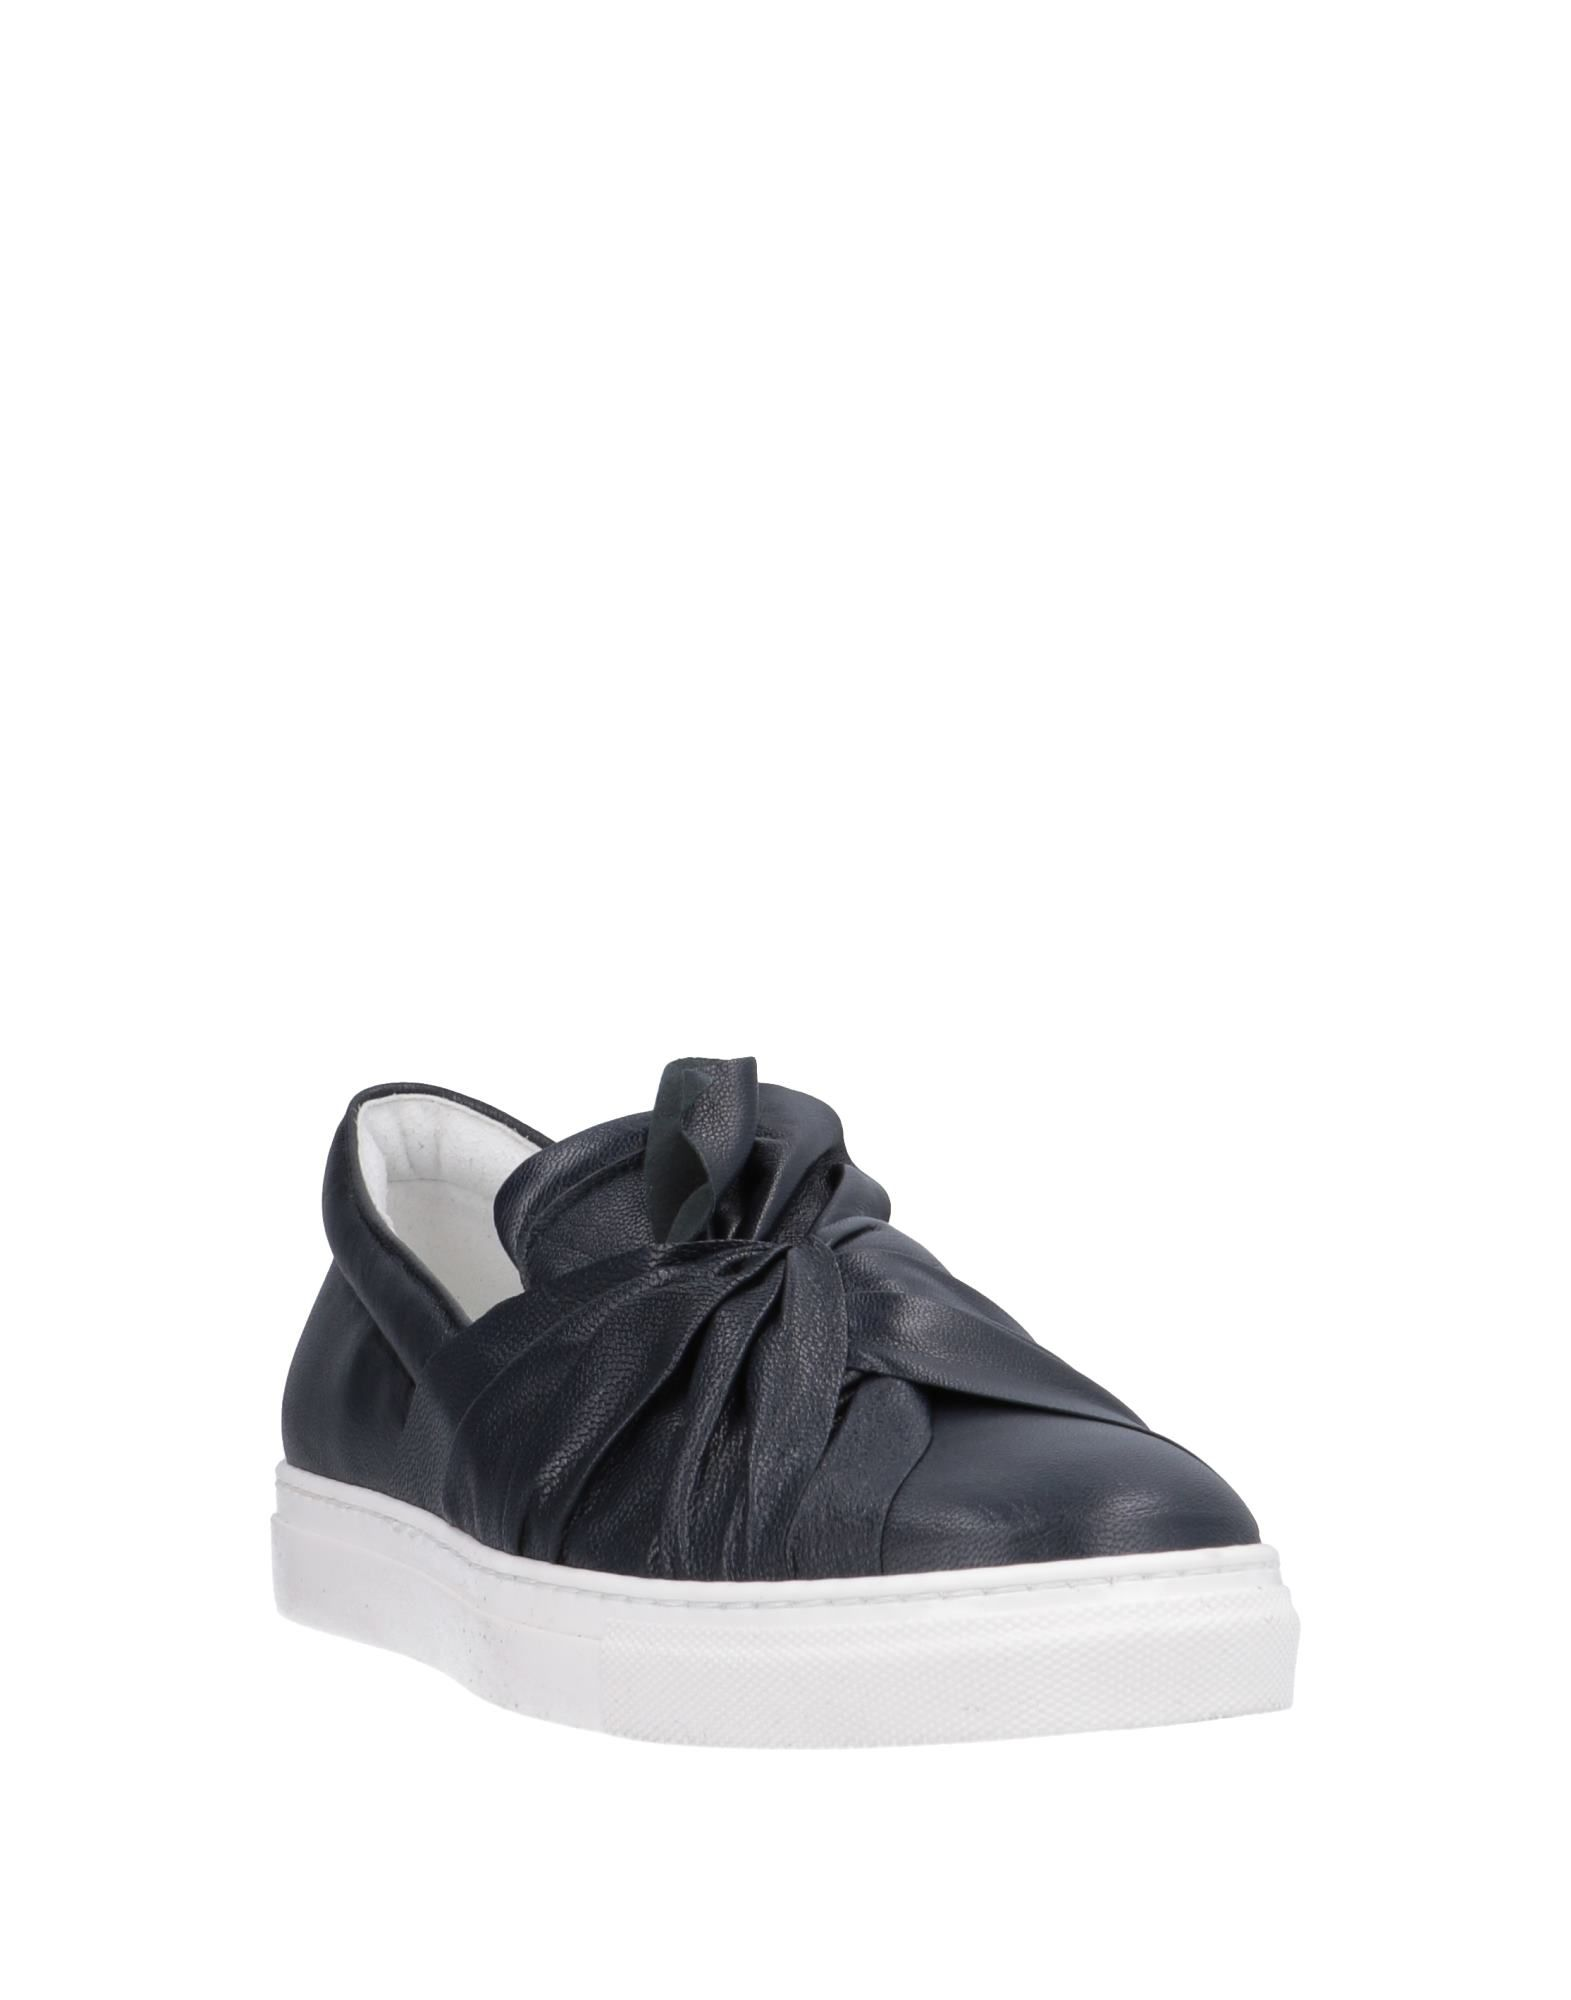 Ovye' By Cristina Lucchi Sneakers Sneakers Sneakers - Women Ovye' By Cristina Lucchi Sneakers online on  United Kingdom - 11559175JG 3392e6